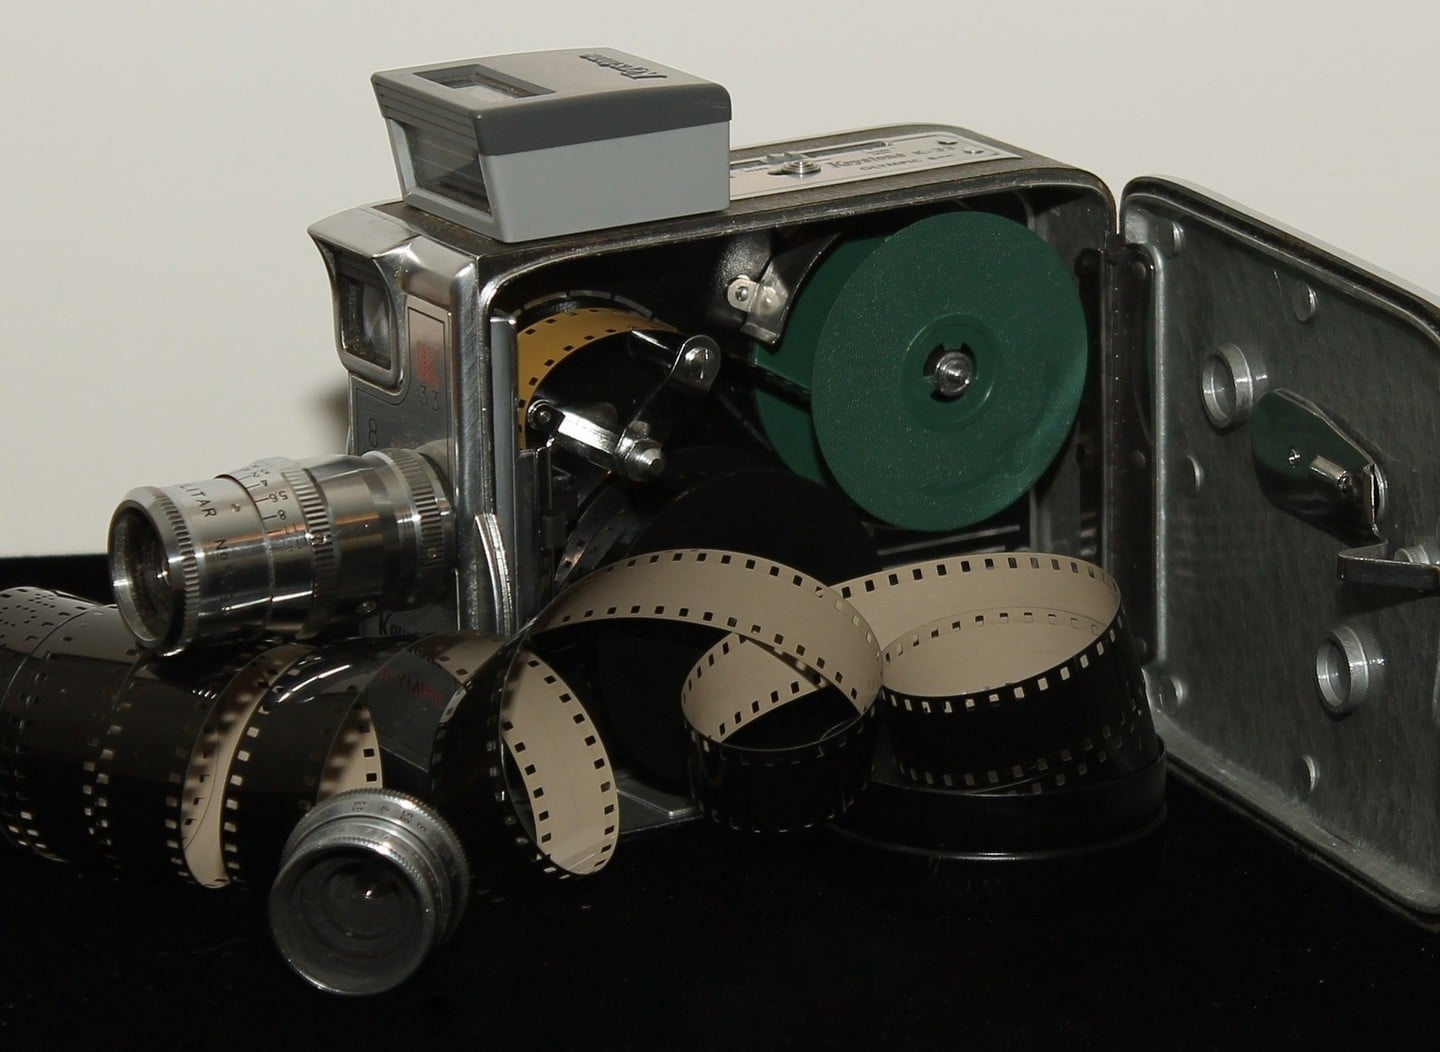 8Mm Vintage Camera the 8mm vintage camera app lets you relive the glory days of